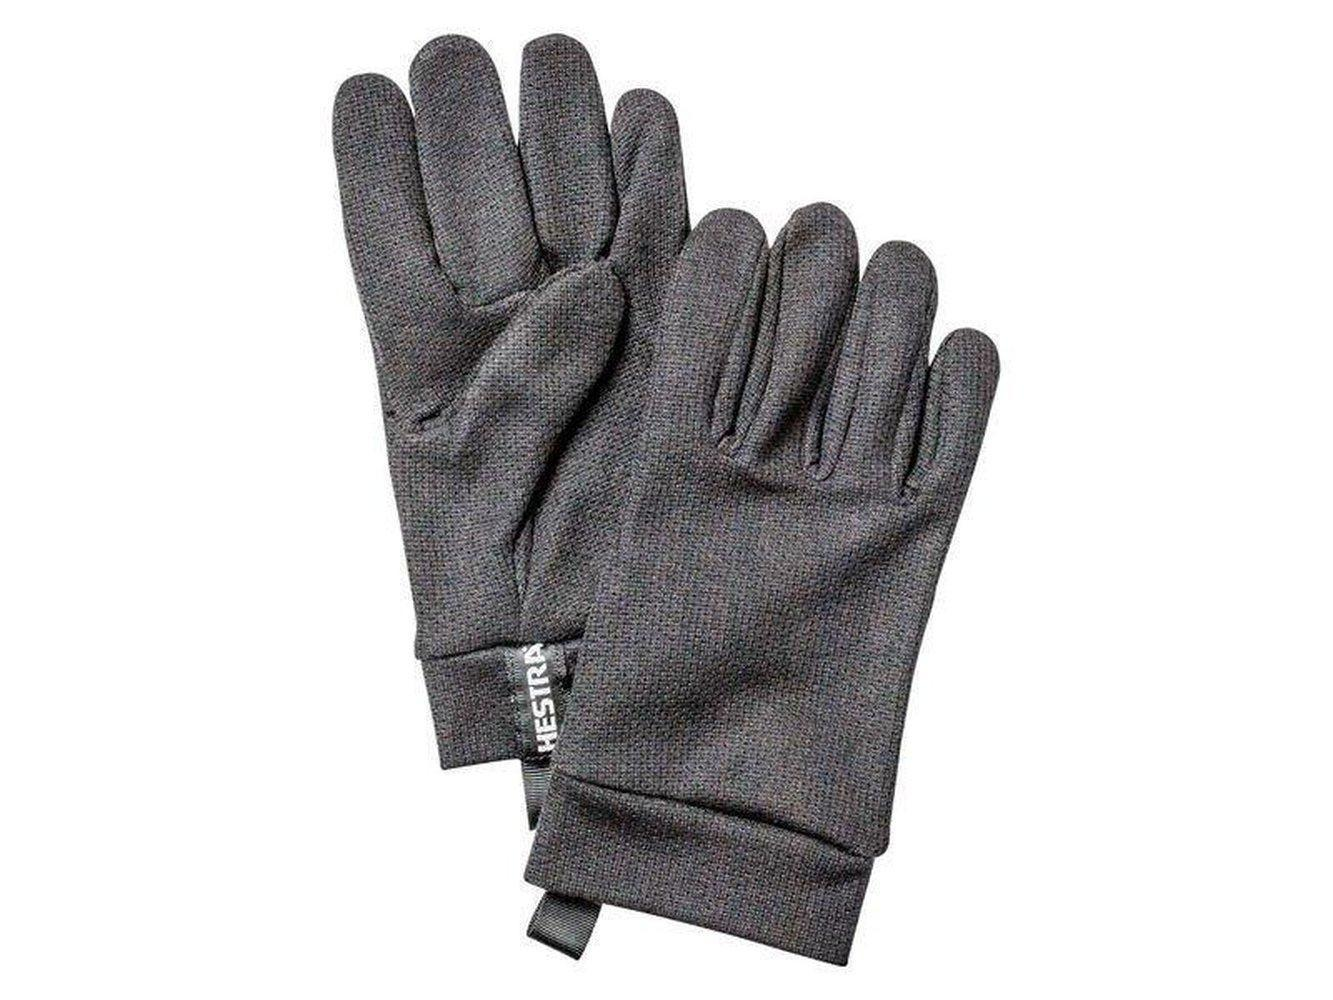 Polartec Power Dry - 5 finger Gloves Hestra Charcoal 9